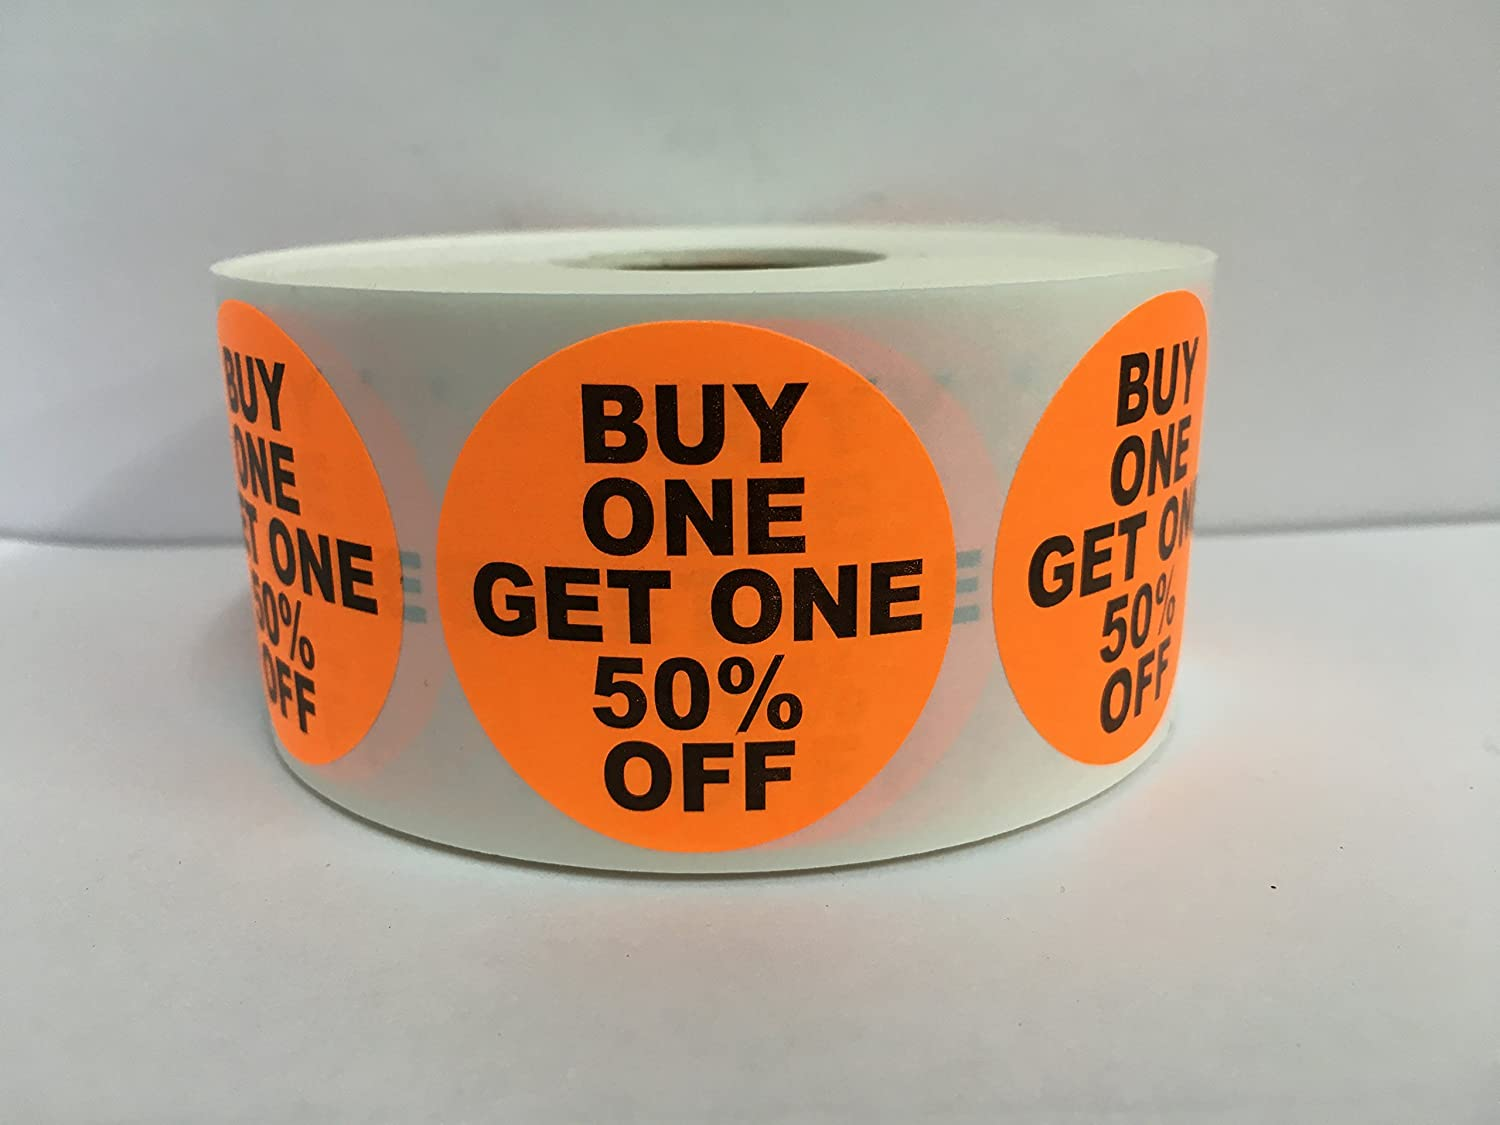 1000 Labels 1.5' Round Orange BUY ONE GET ONE 50% OFF Point of Sale Discount Pricing Retail Stickers 1 Roll Labels and More